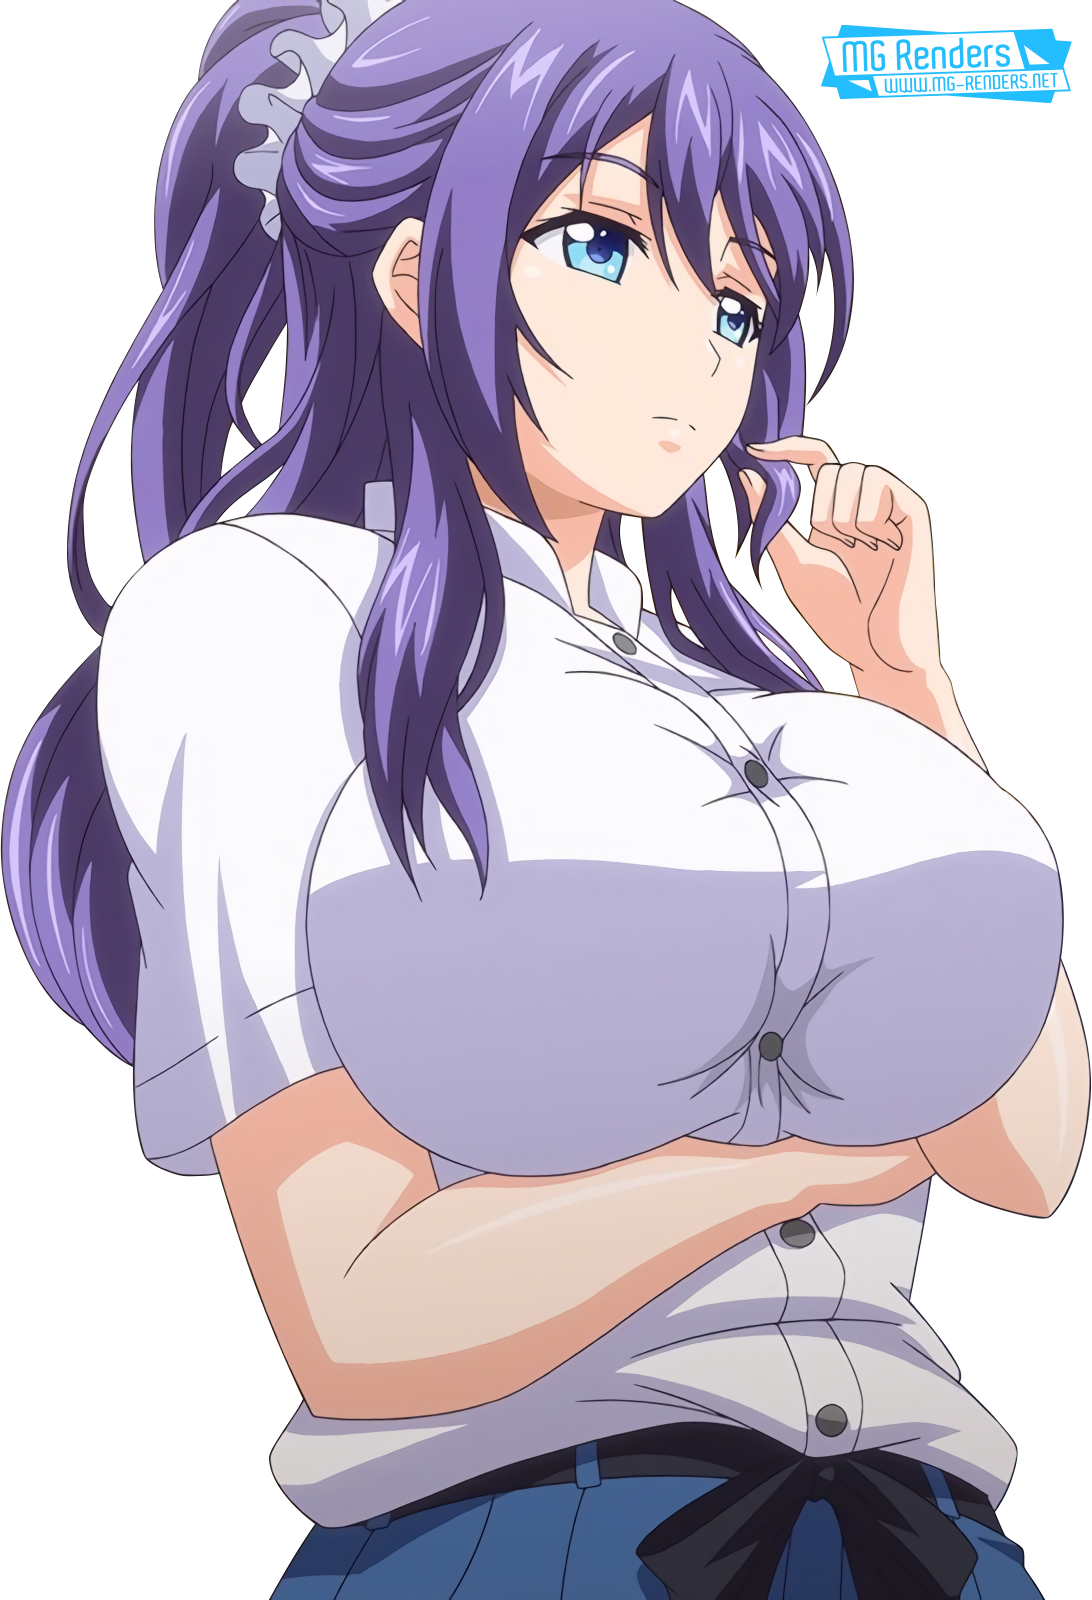 Tags: Anime, Render,  Huge Breasts,  Mankitsu Happening,  Skirt,  Suzukawa Rei, PNG, Image, Picture